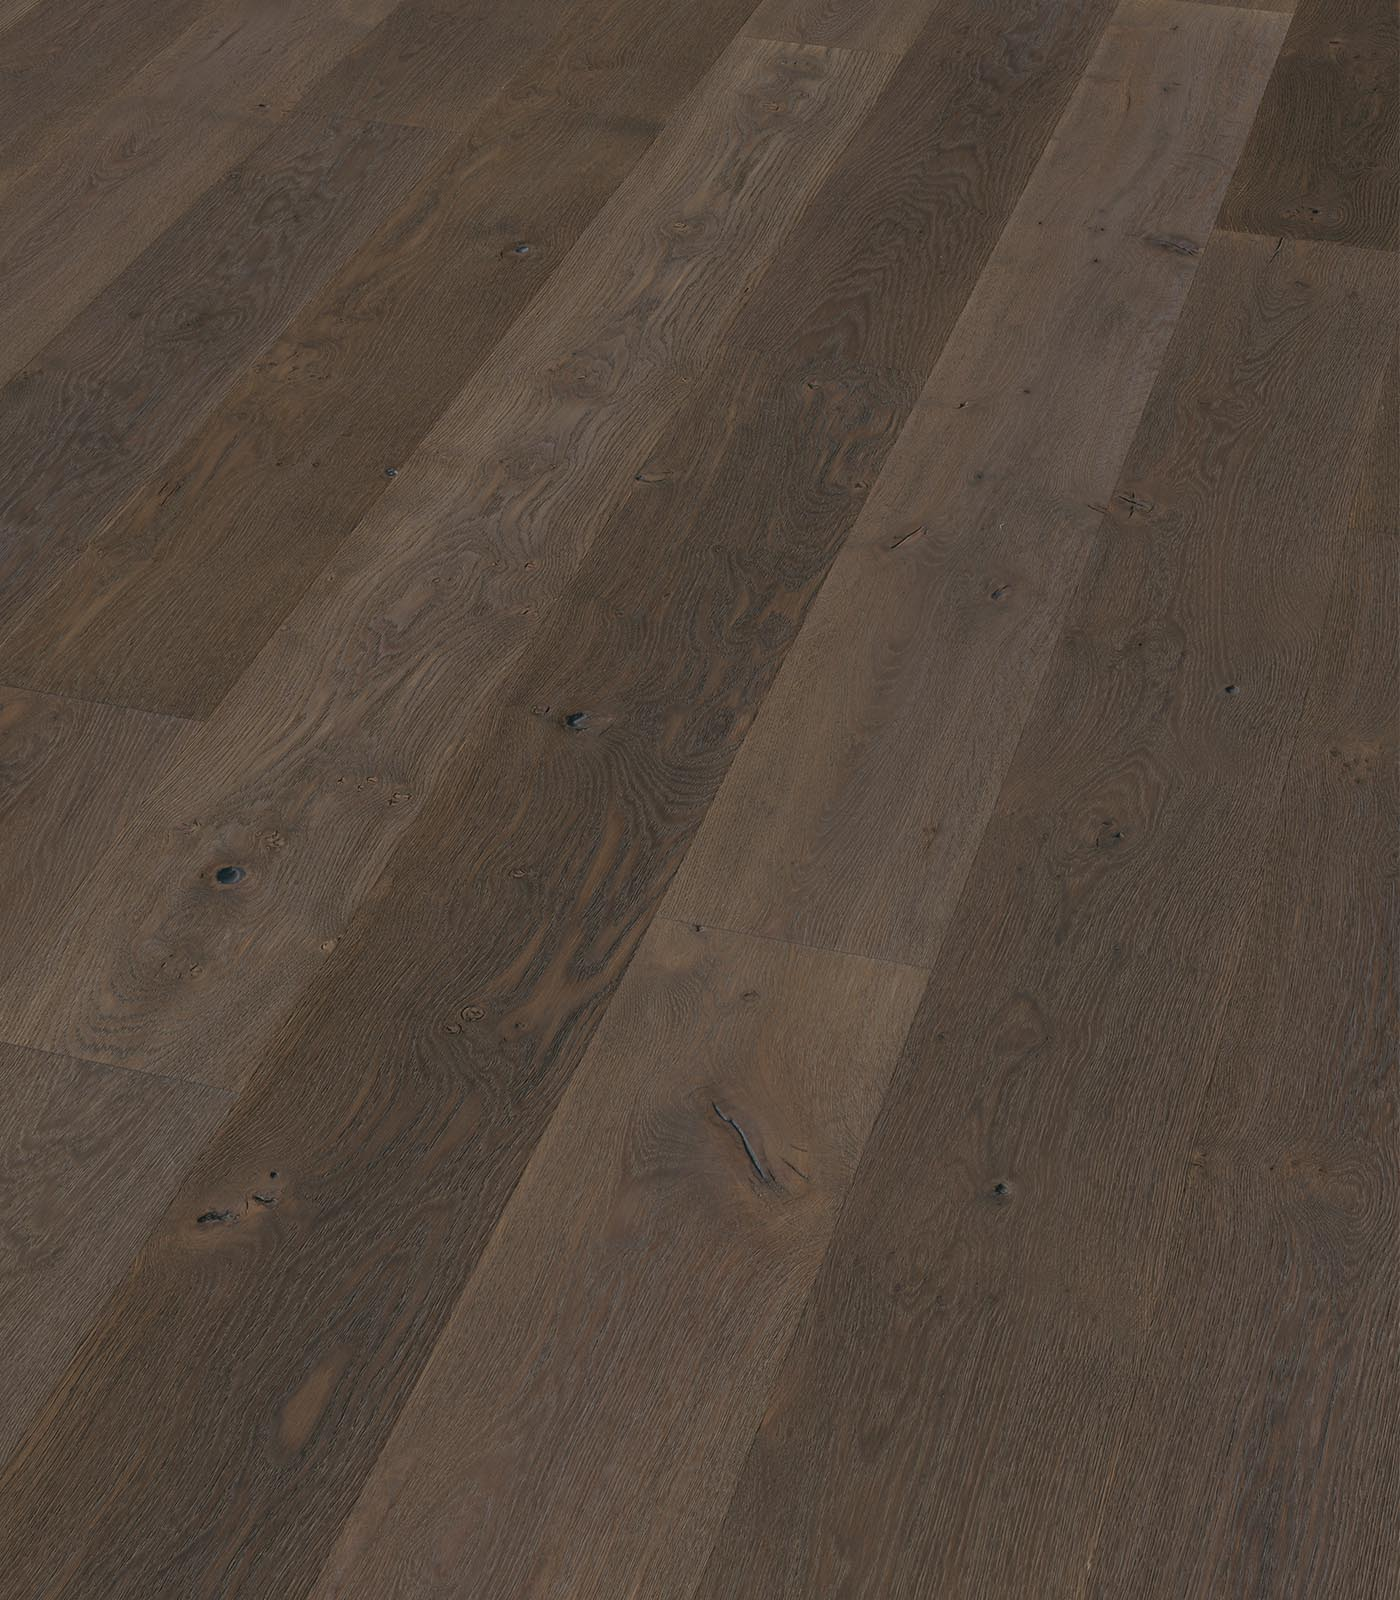 Bern-European Oak Floors-Heritage Collection-angle